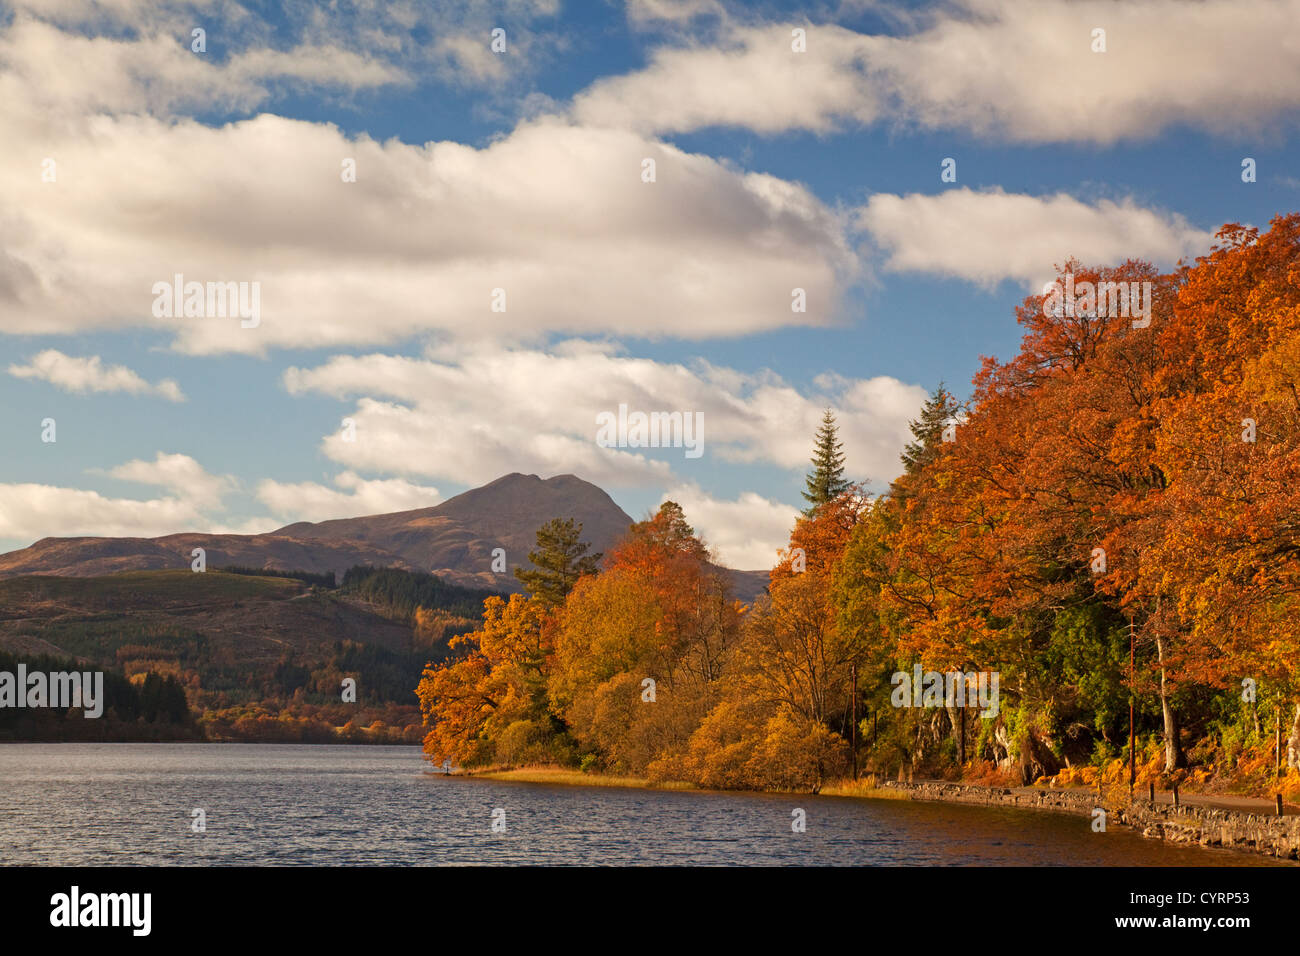 Autumn colours at Loch Ard. Ben Lomond is in the background. - Stock Image